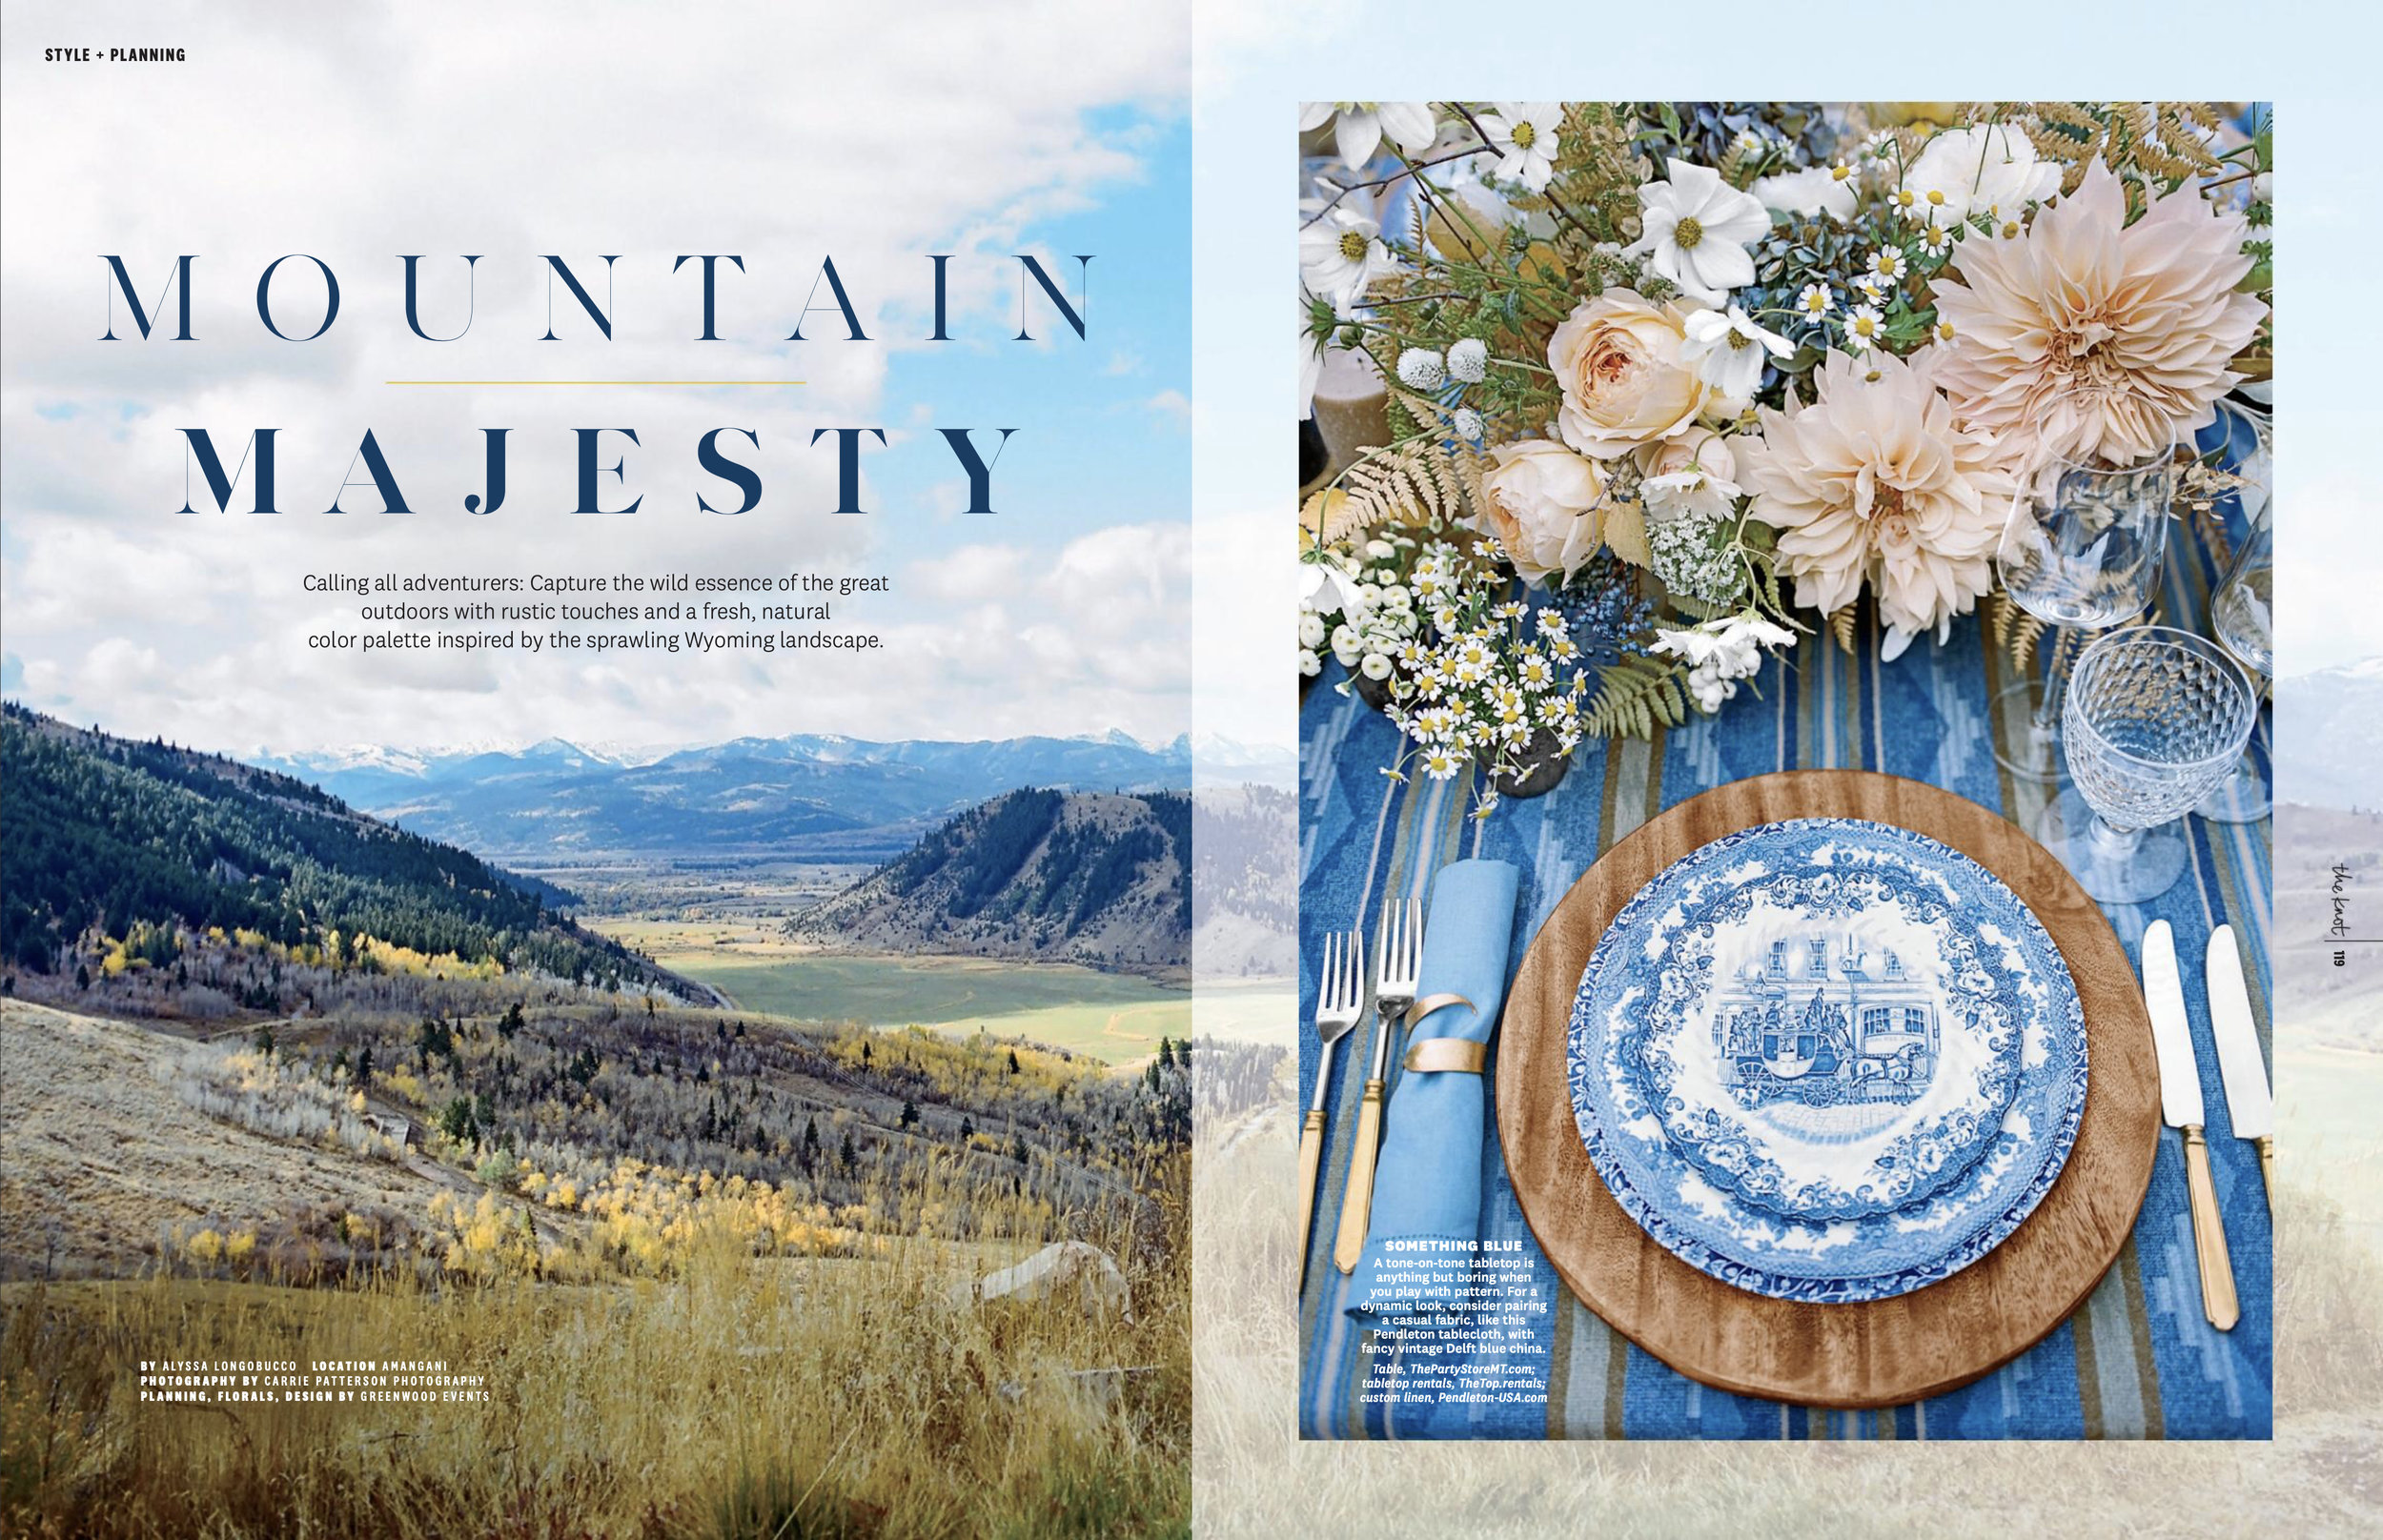 Featured in The 2019 Fall Issue of The Knot's Style + Planning Section